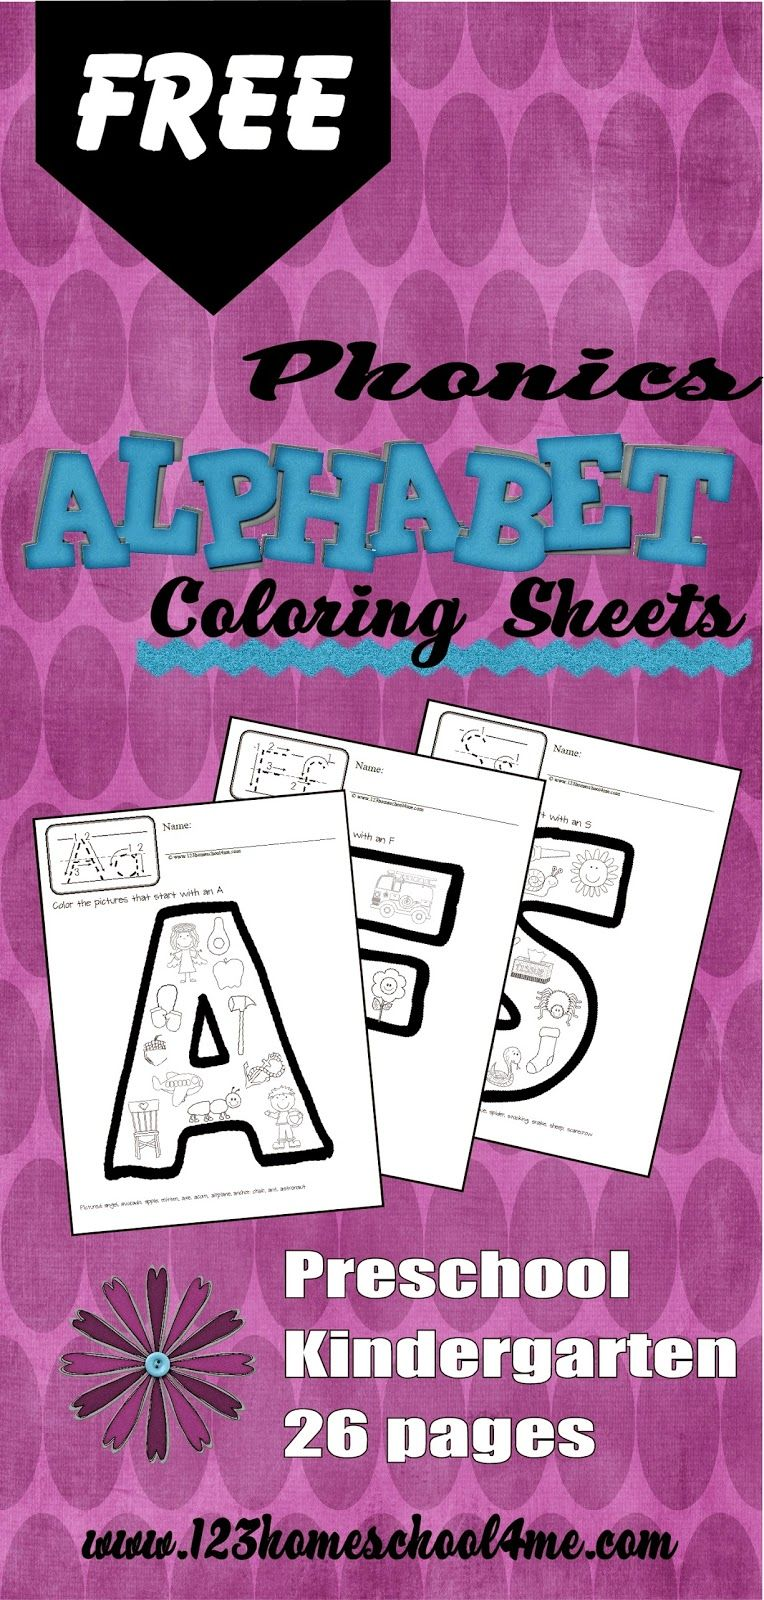 Coloring worksheets phonics - Phonics Alphabet Coloring Pages